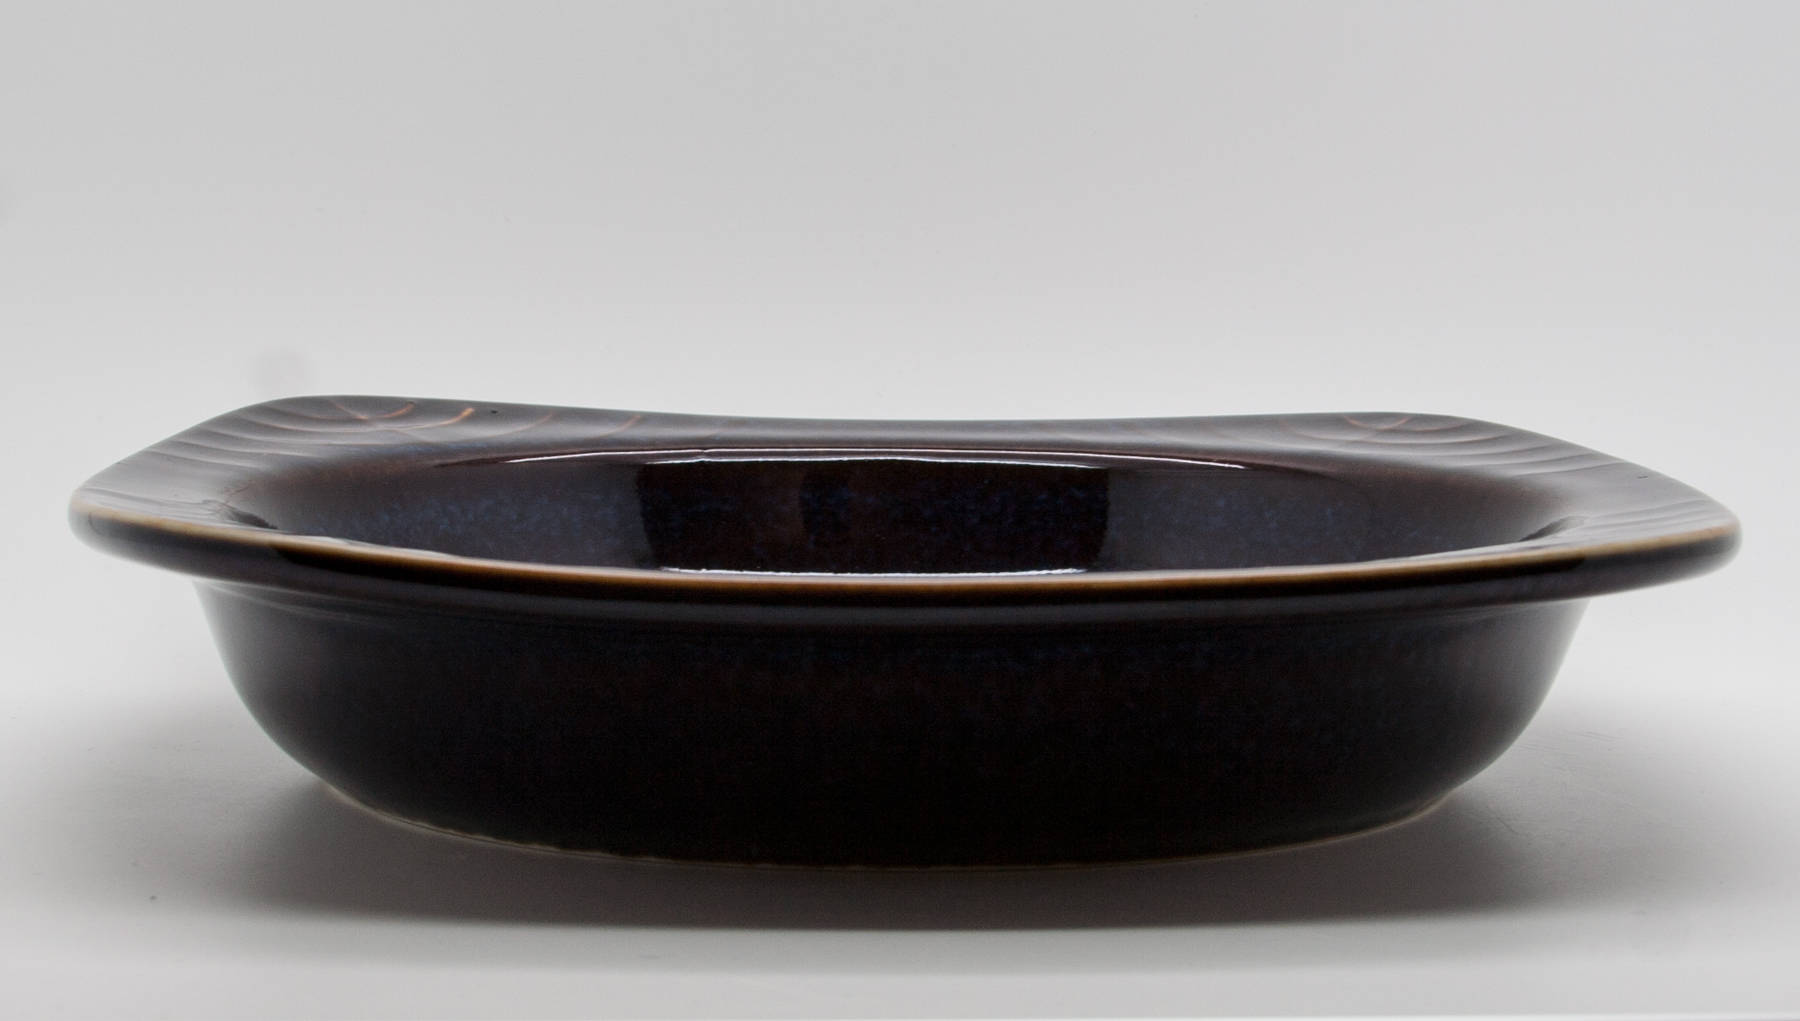 Rörstrand CARL HARRY STÅLHANE Blue Harefur Glazed Stoneware Bowl Tray - Mollaris.com